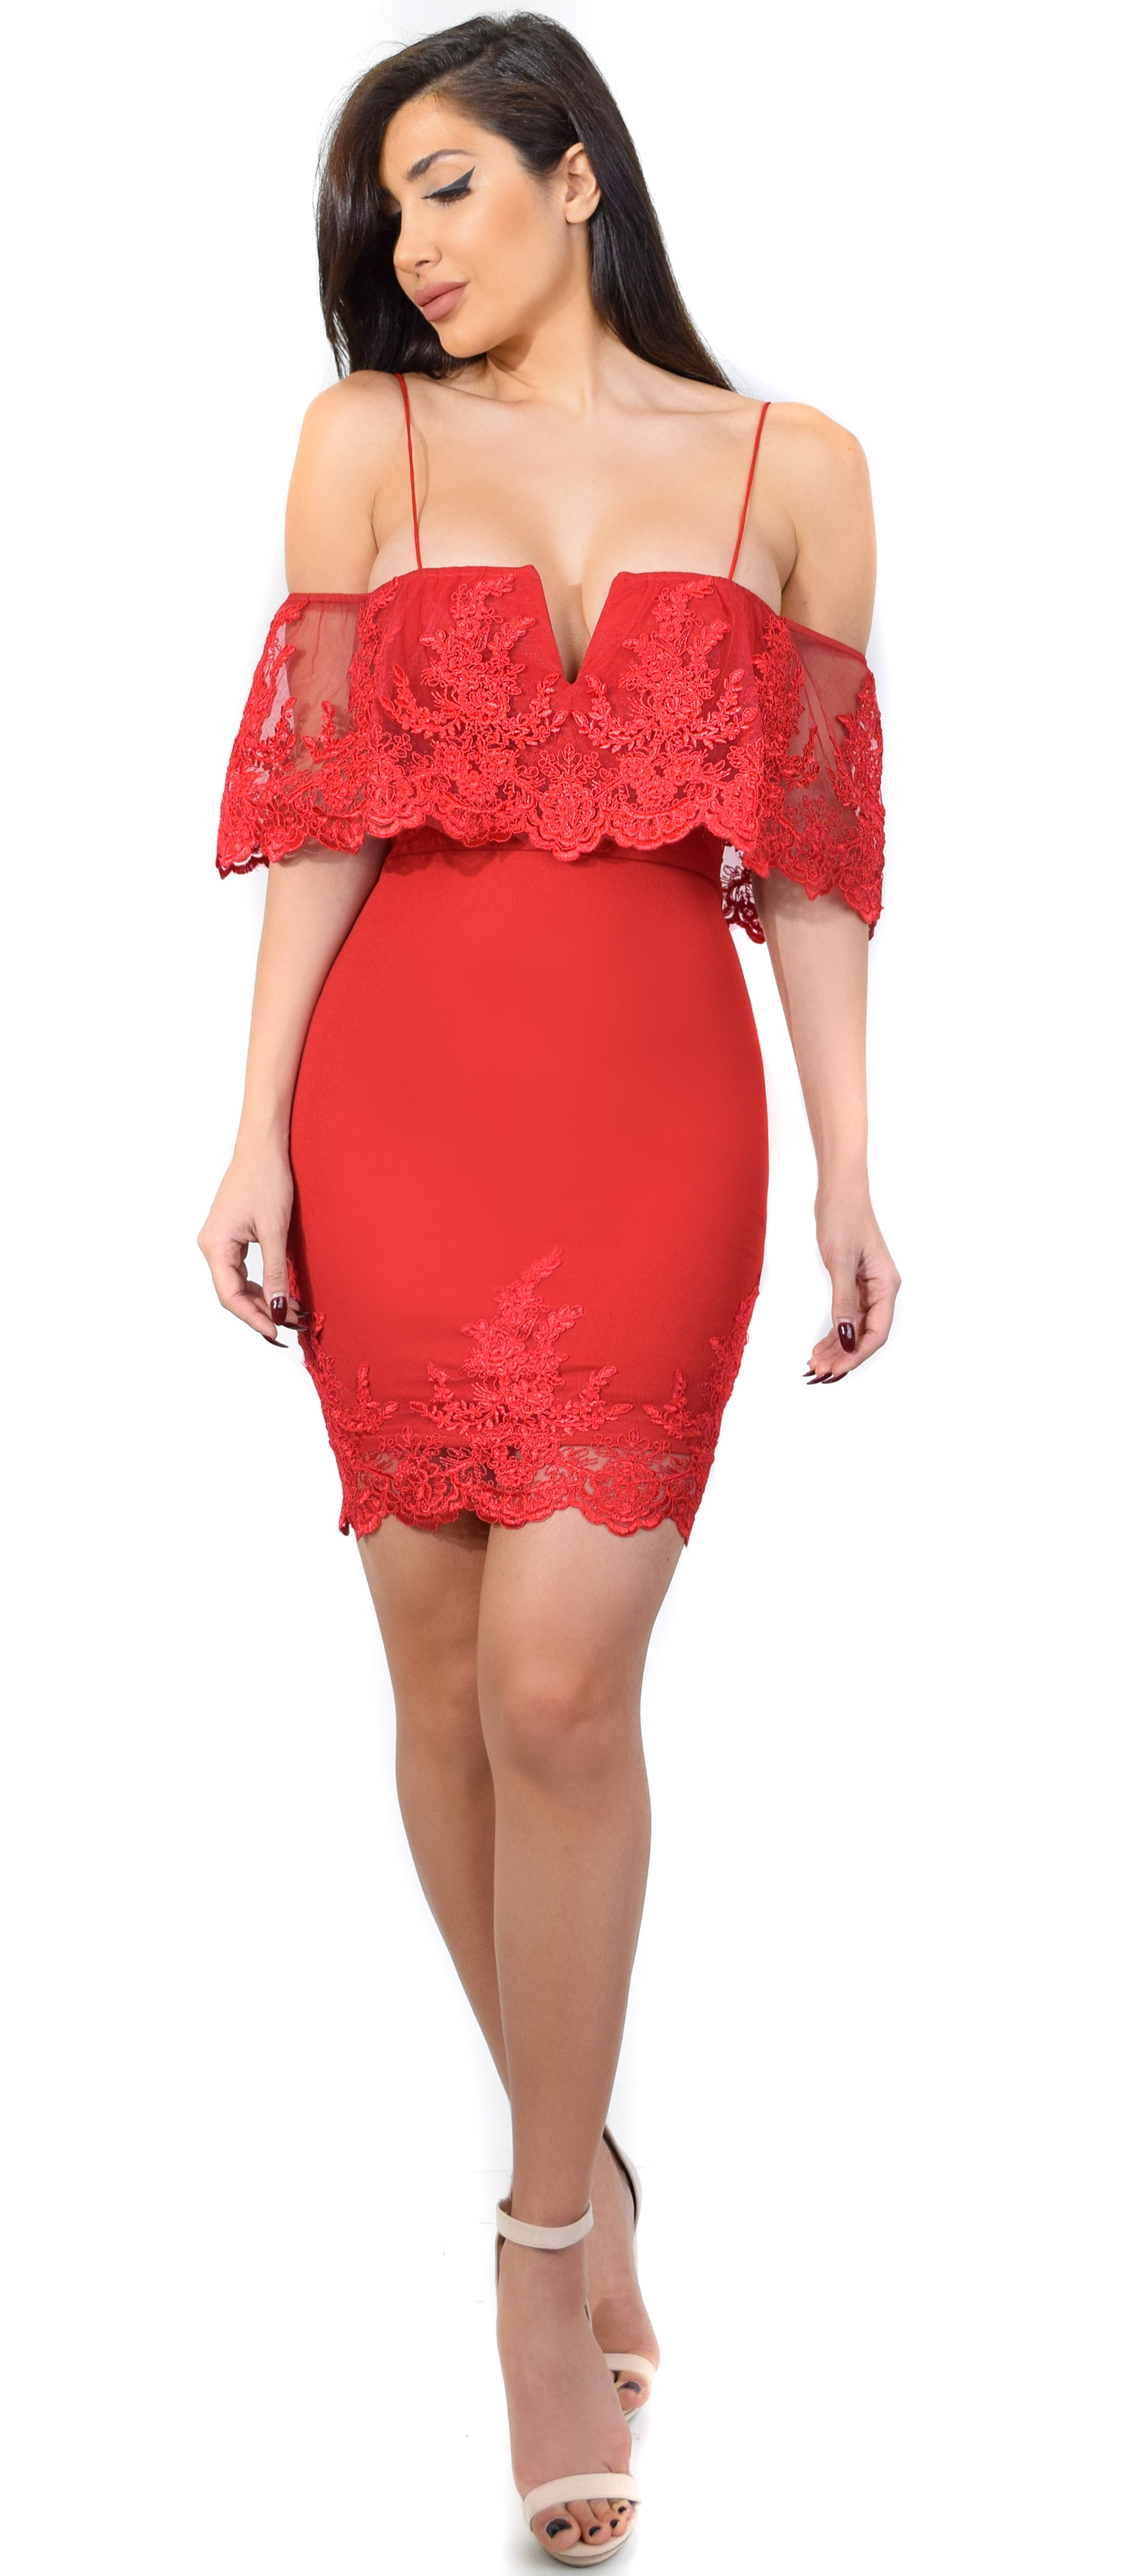 Arcelia Red V Lace Mesh Flounce Dress - Emprada